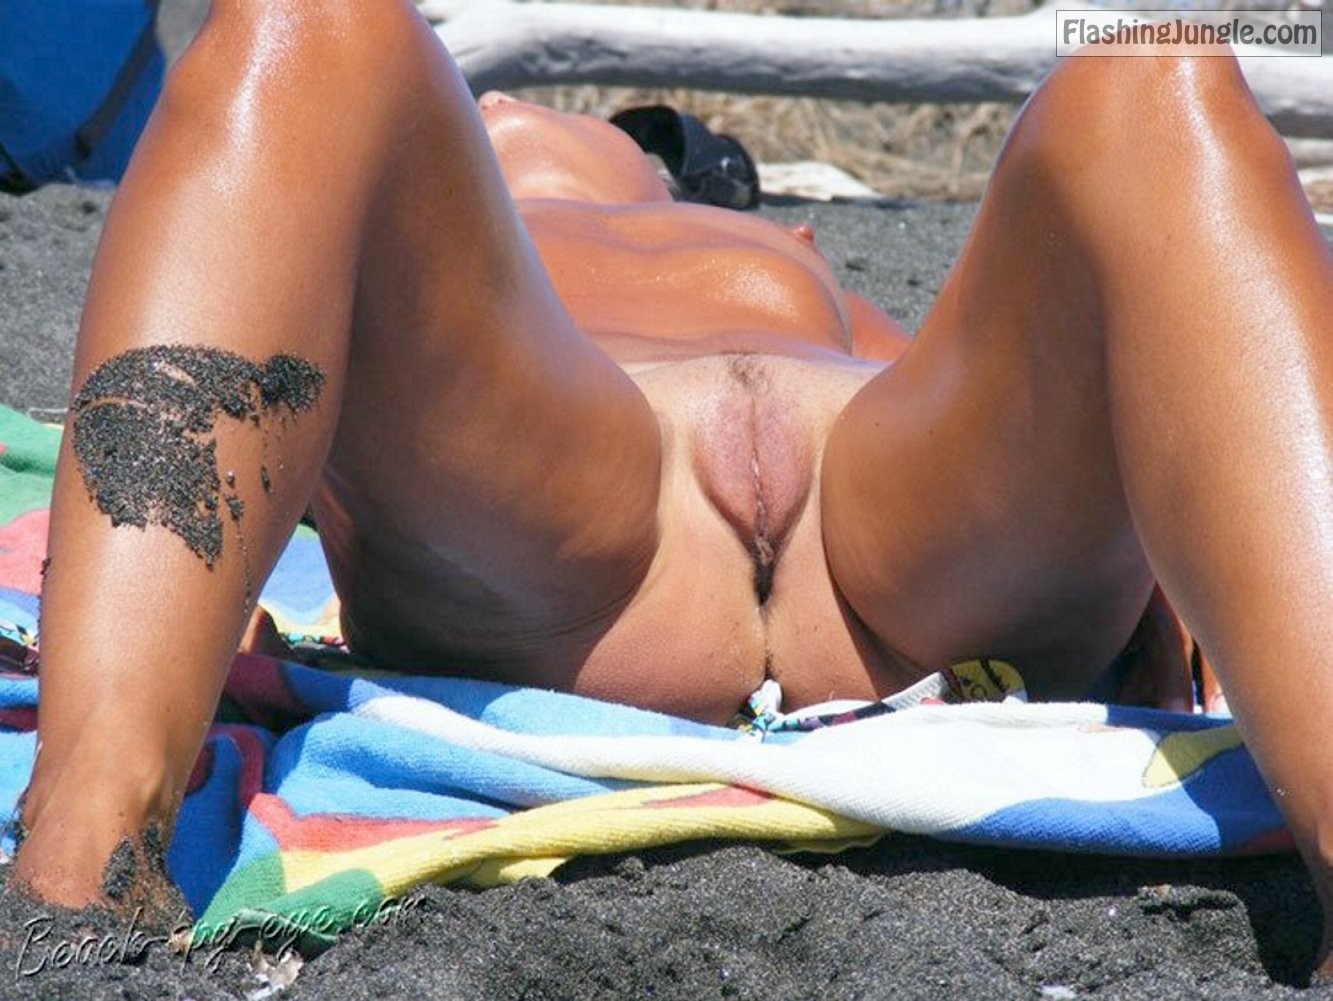 Naked Slut Sunbathing Her Meaty Trimmed Pussy On The Beach -1326